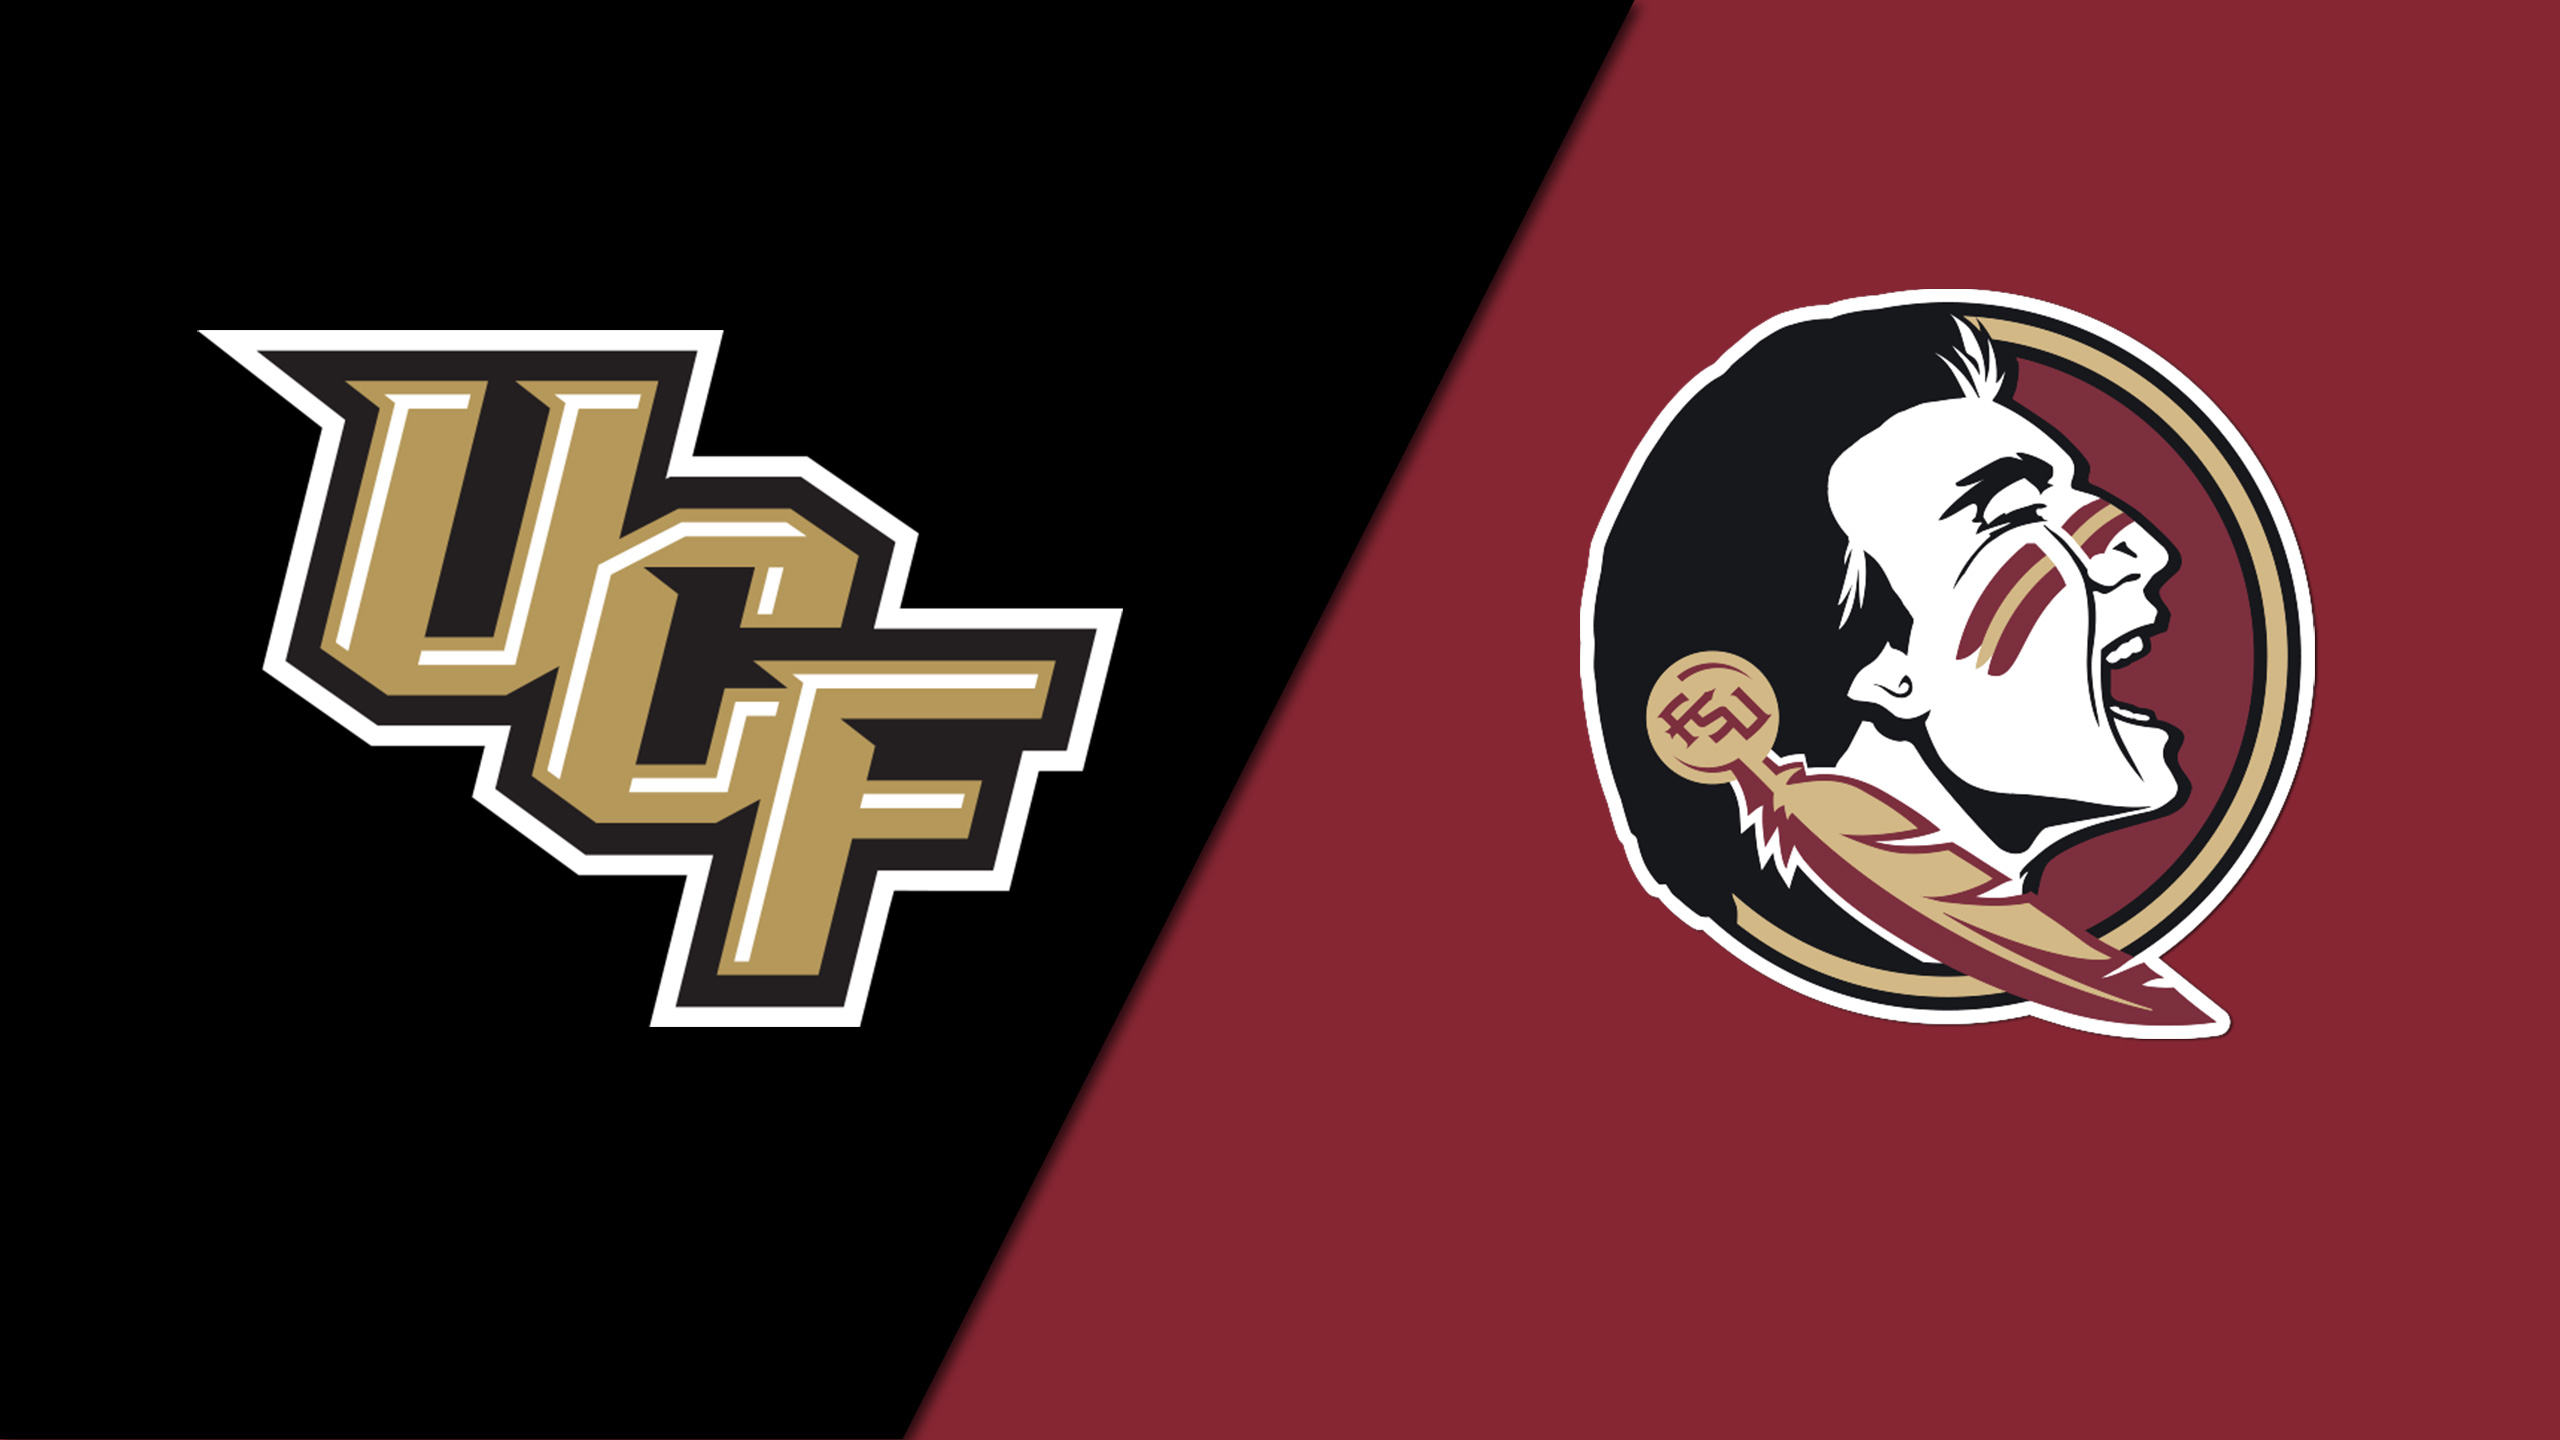 UCF vs. Florida State (Baseball)